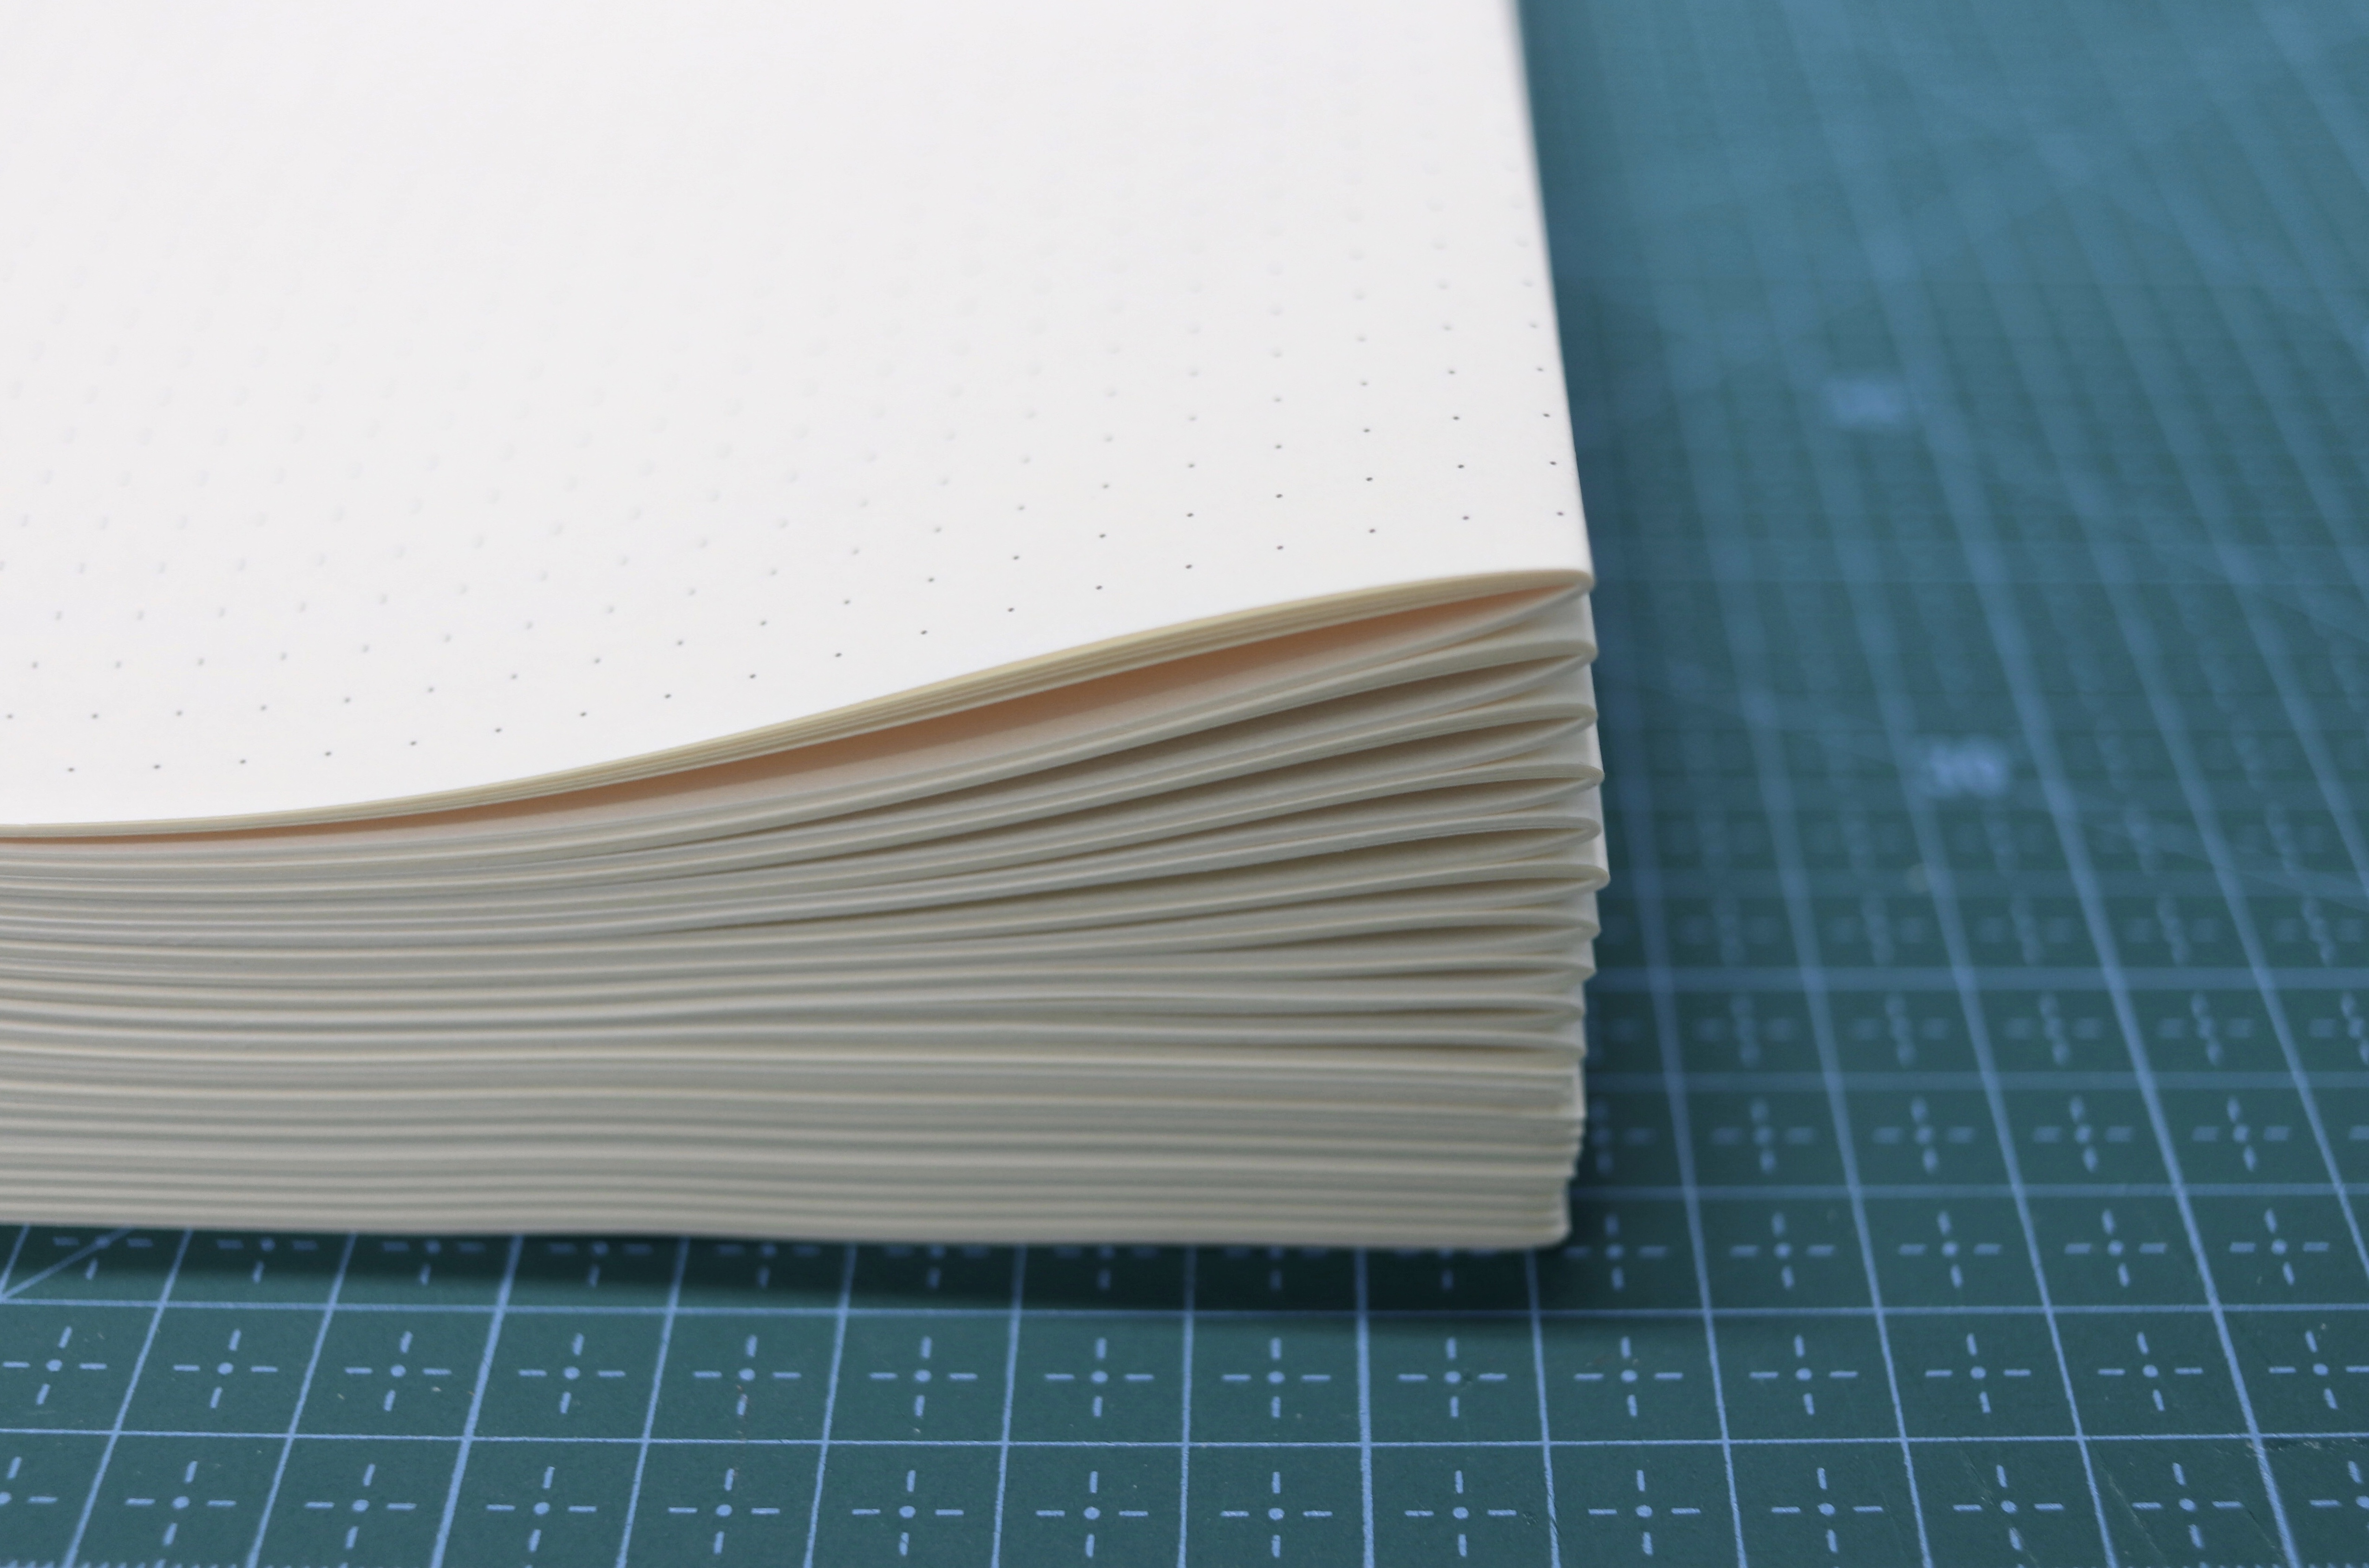 New pages in signatures ready for bookbinding